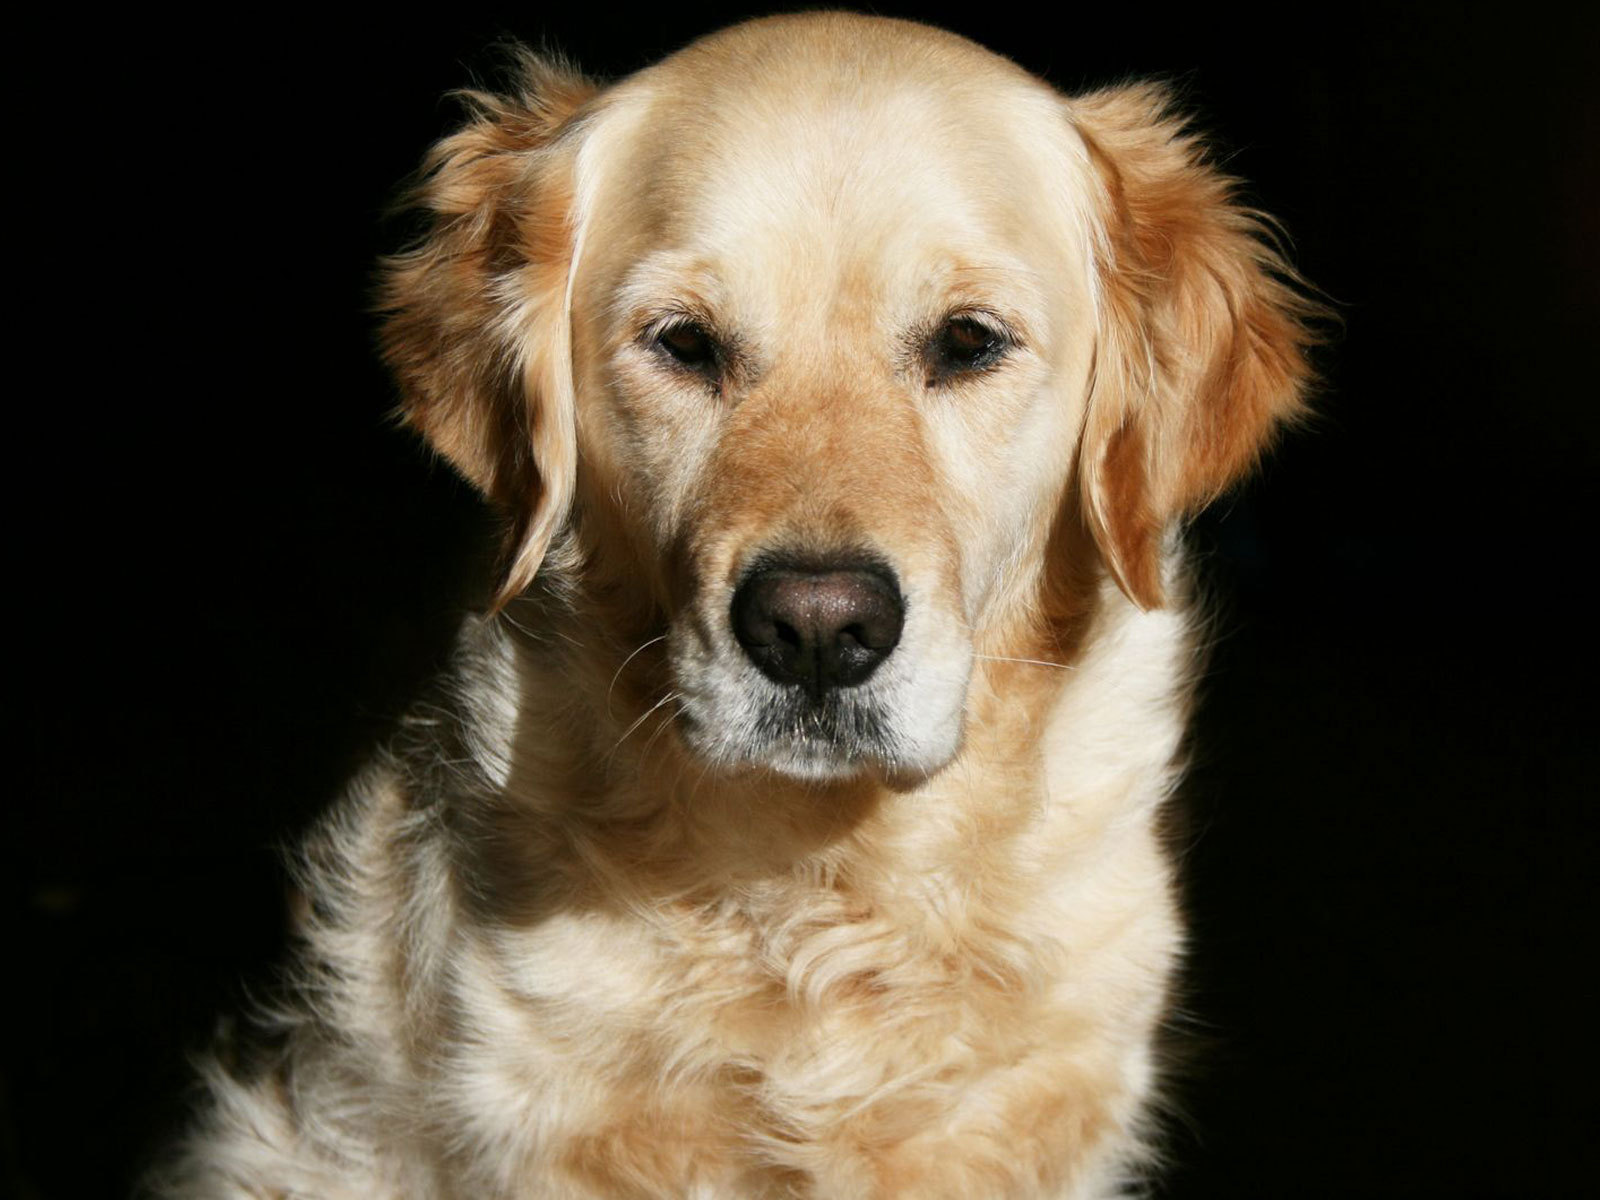 12502 download wallpaper Animals, Dogs screensavers and pictures for free